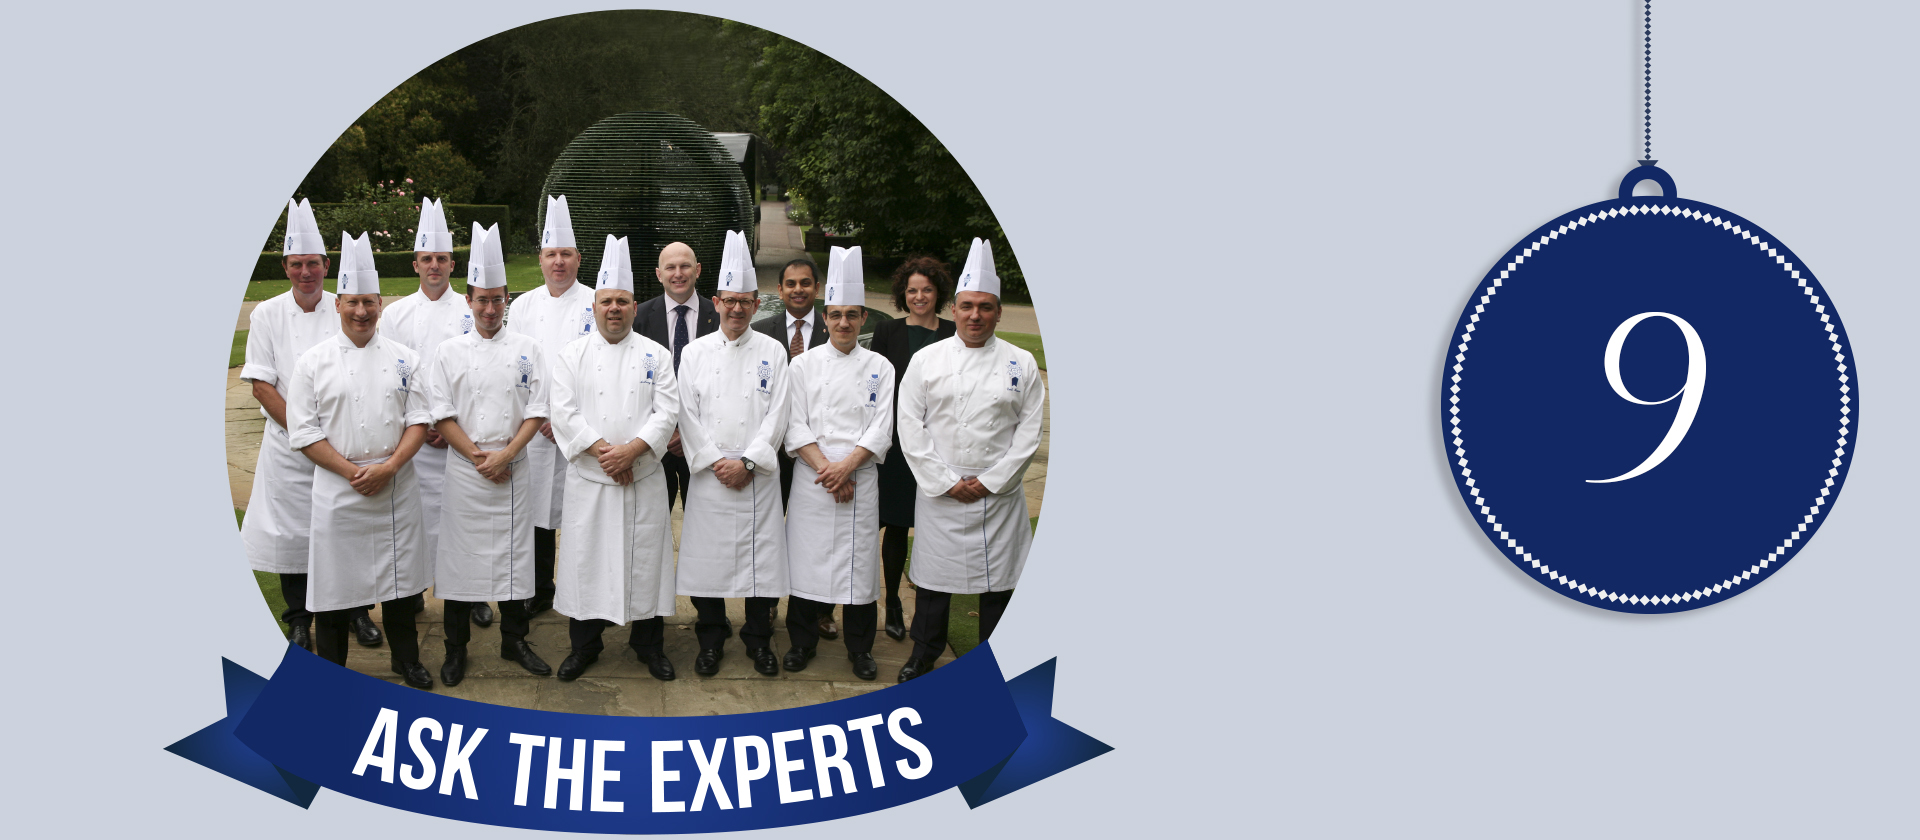 Ask the experts competition - Le Cordon Bleu London